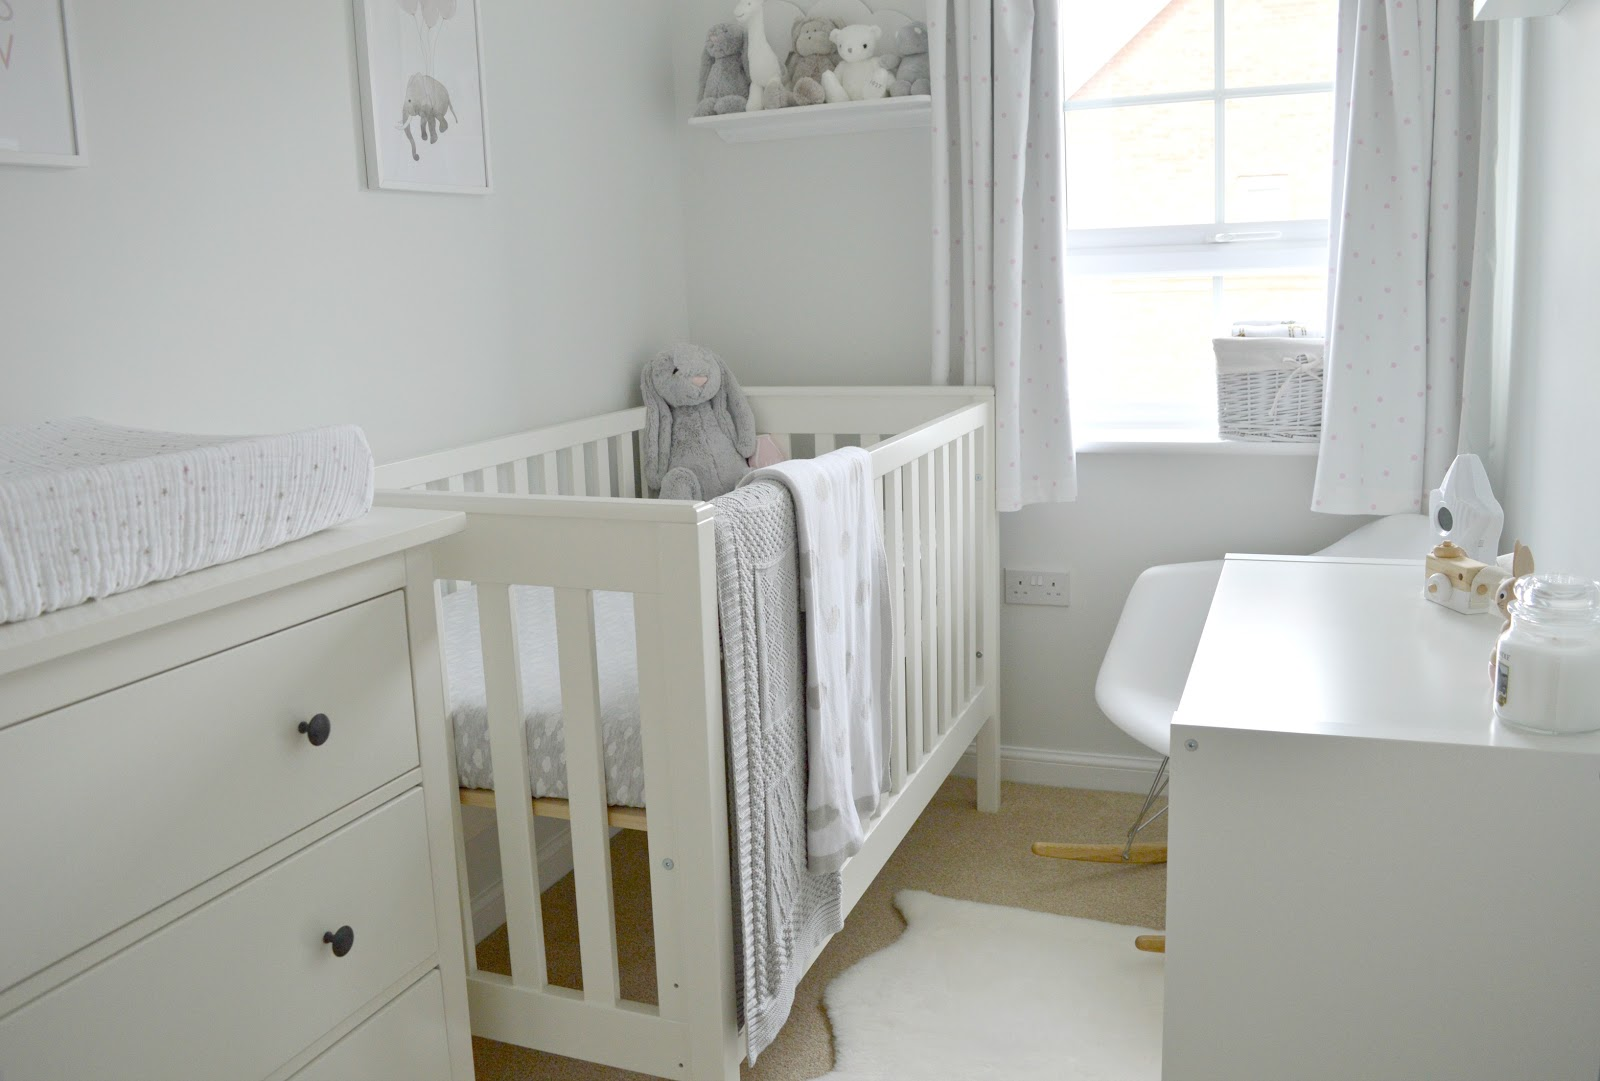 I M So Excited To Share Baby S Nursery With You All Today It Been A Work In Progress And Taken While Get Everything Right